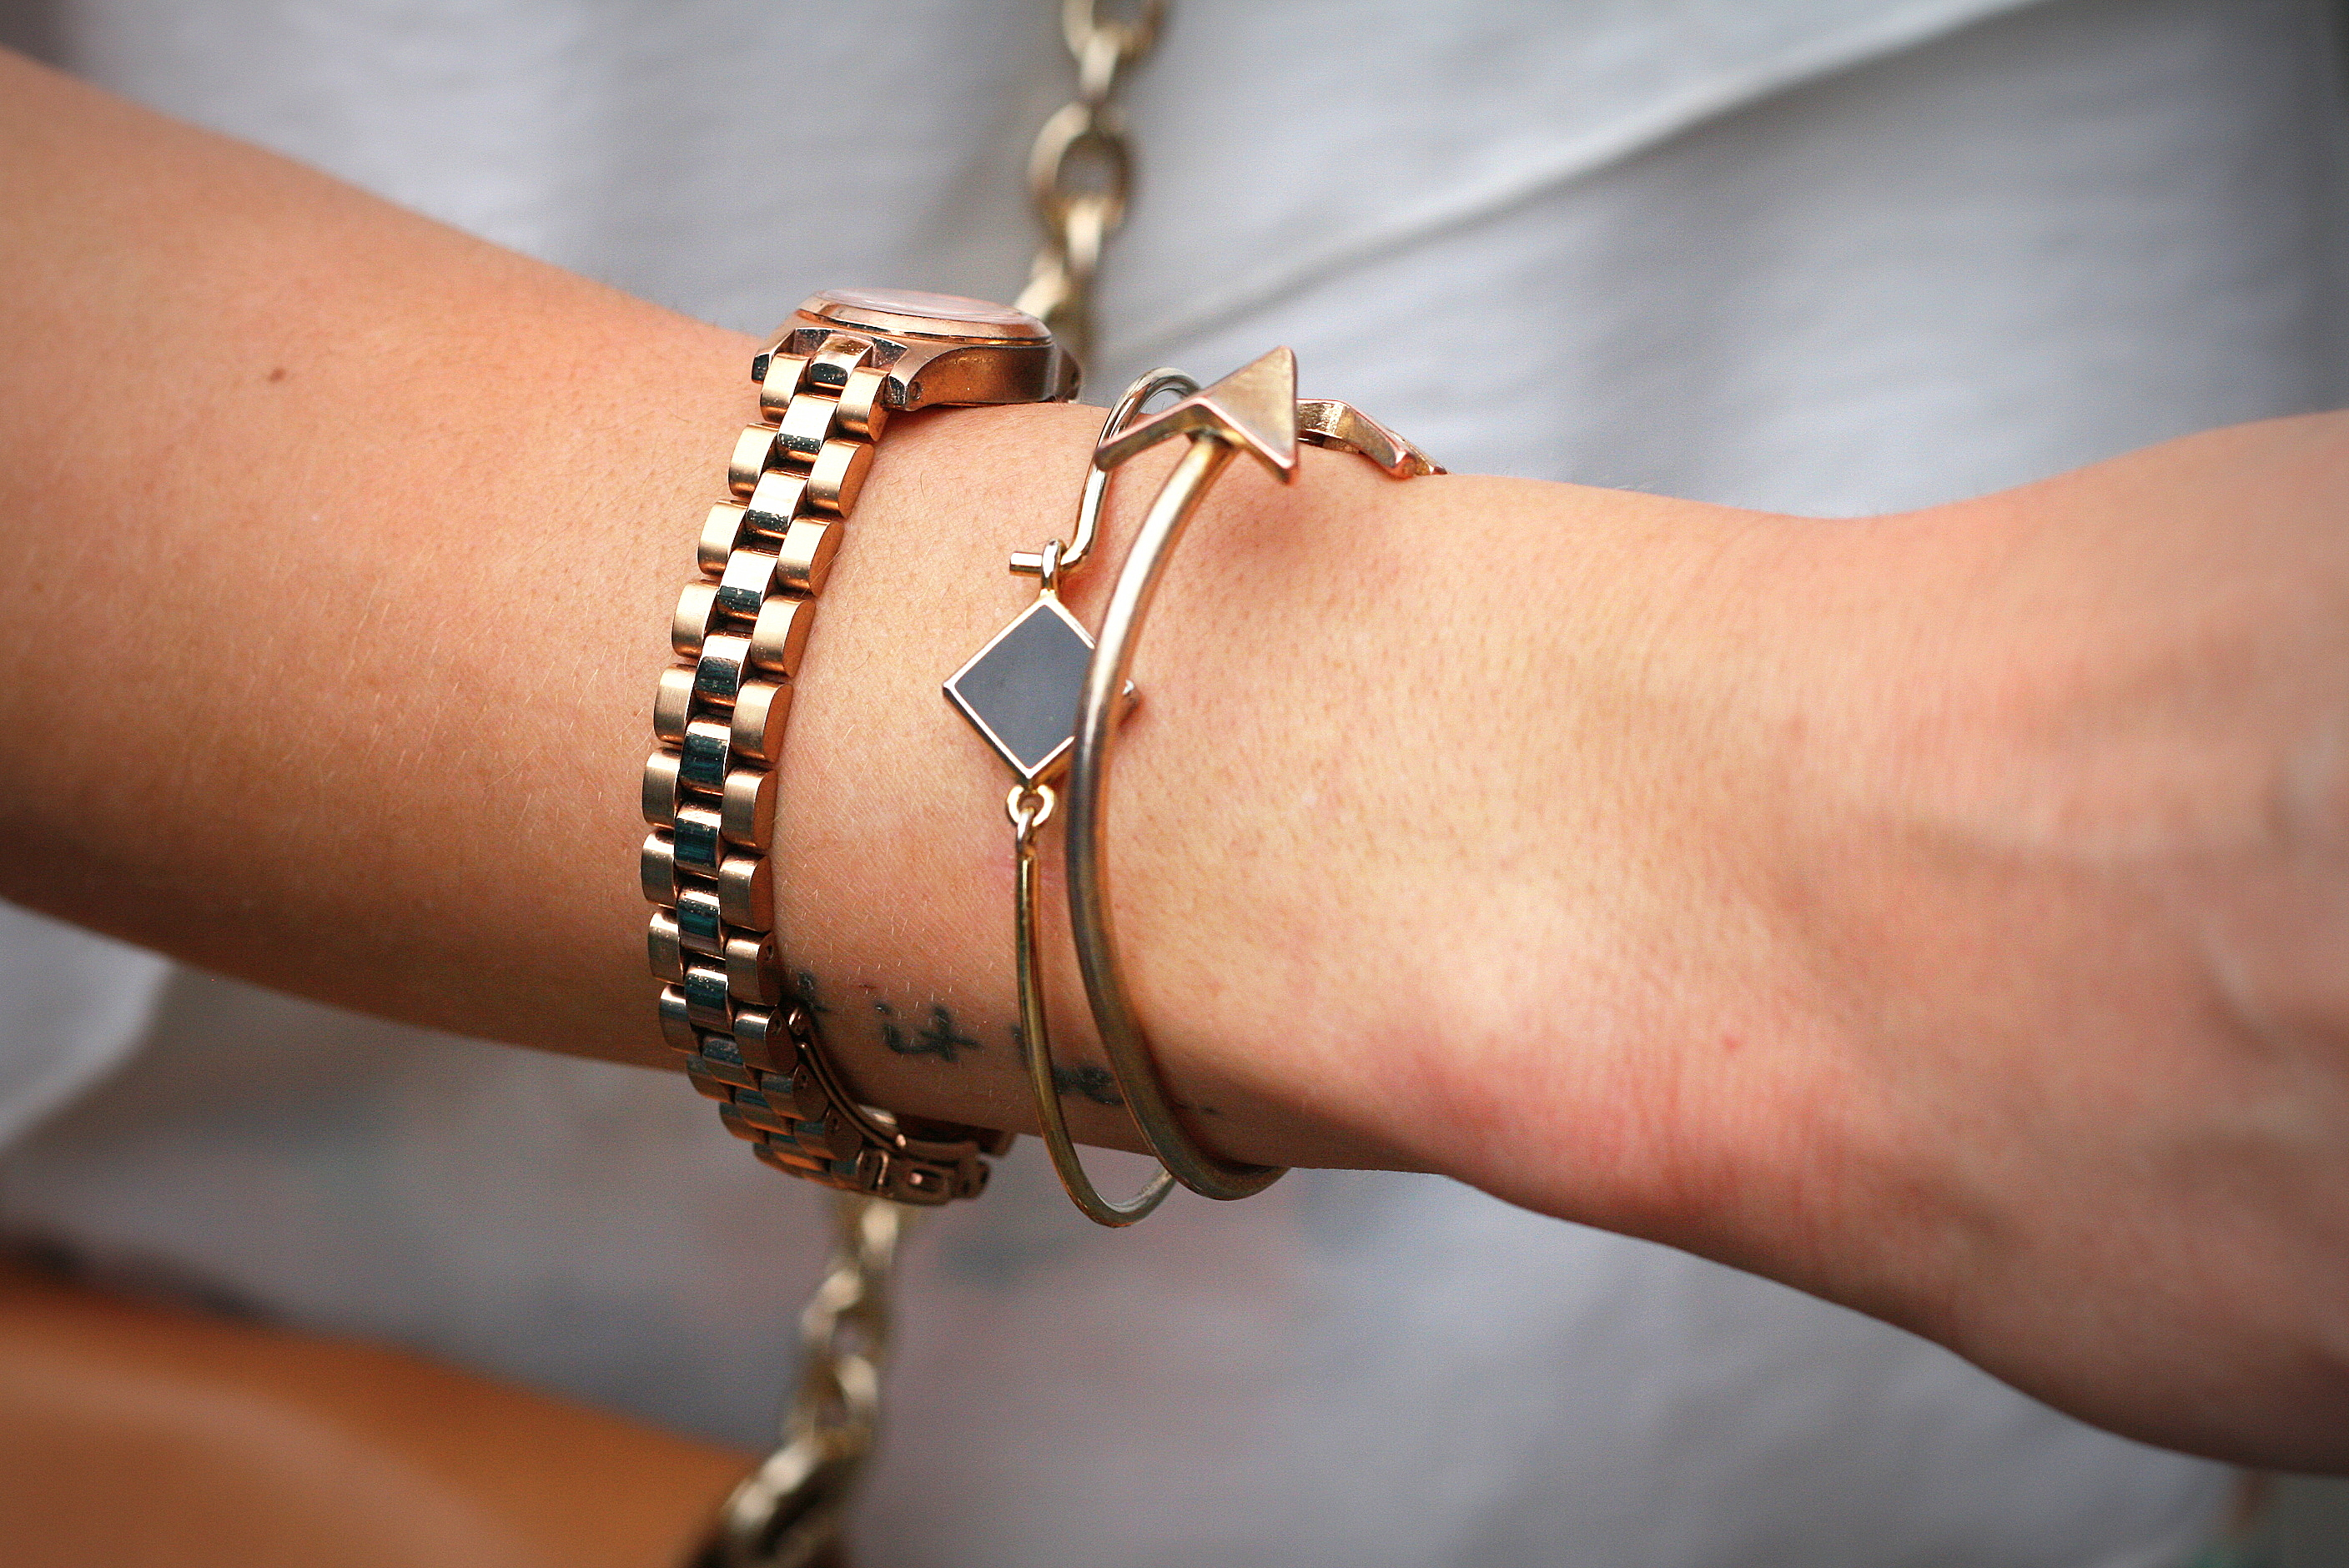 Watch by Marc jacobs & Braclets by Akira & American Apparel. Ooh, do we see a chic little tatoo? It says...Let it be. That's what we LOVE- easy going chic attitude!